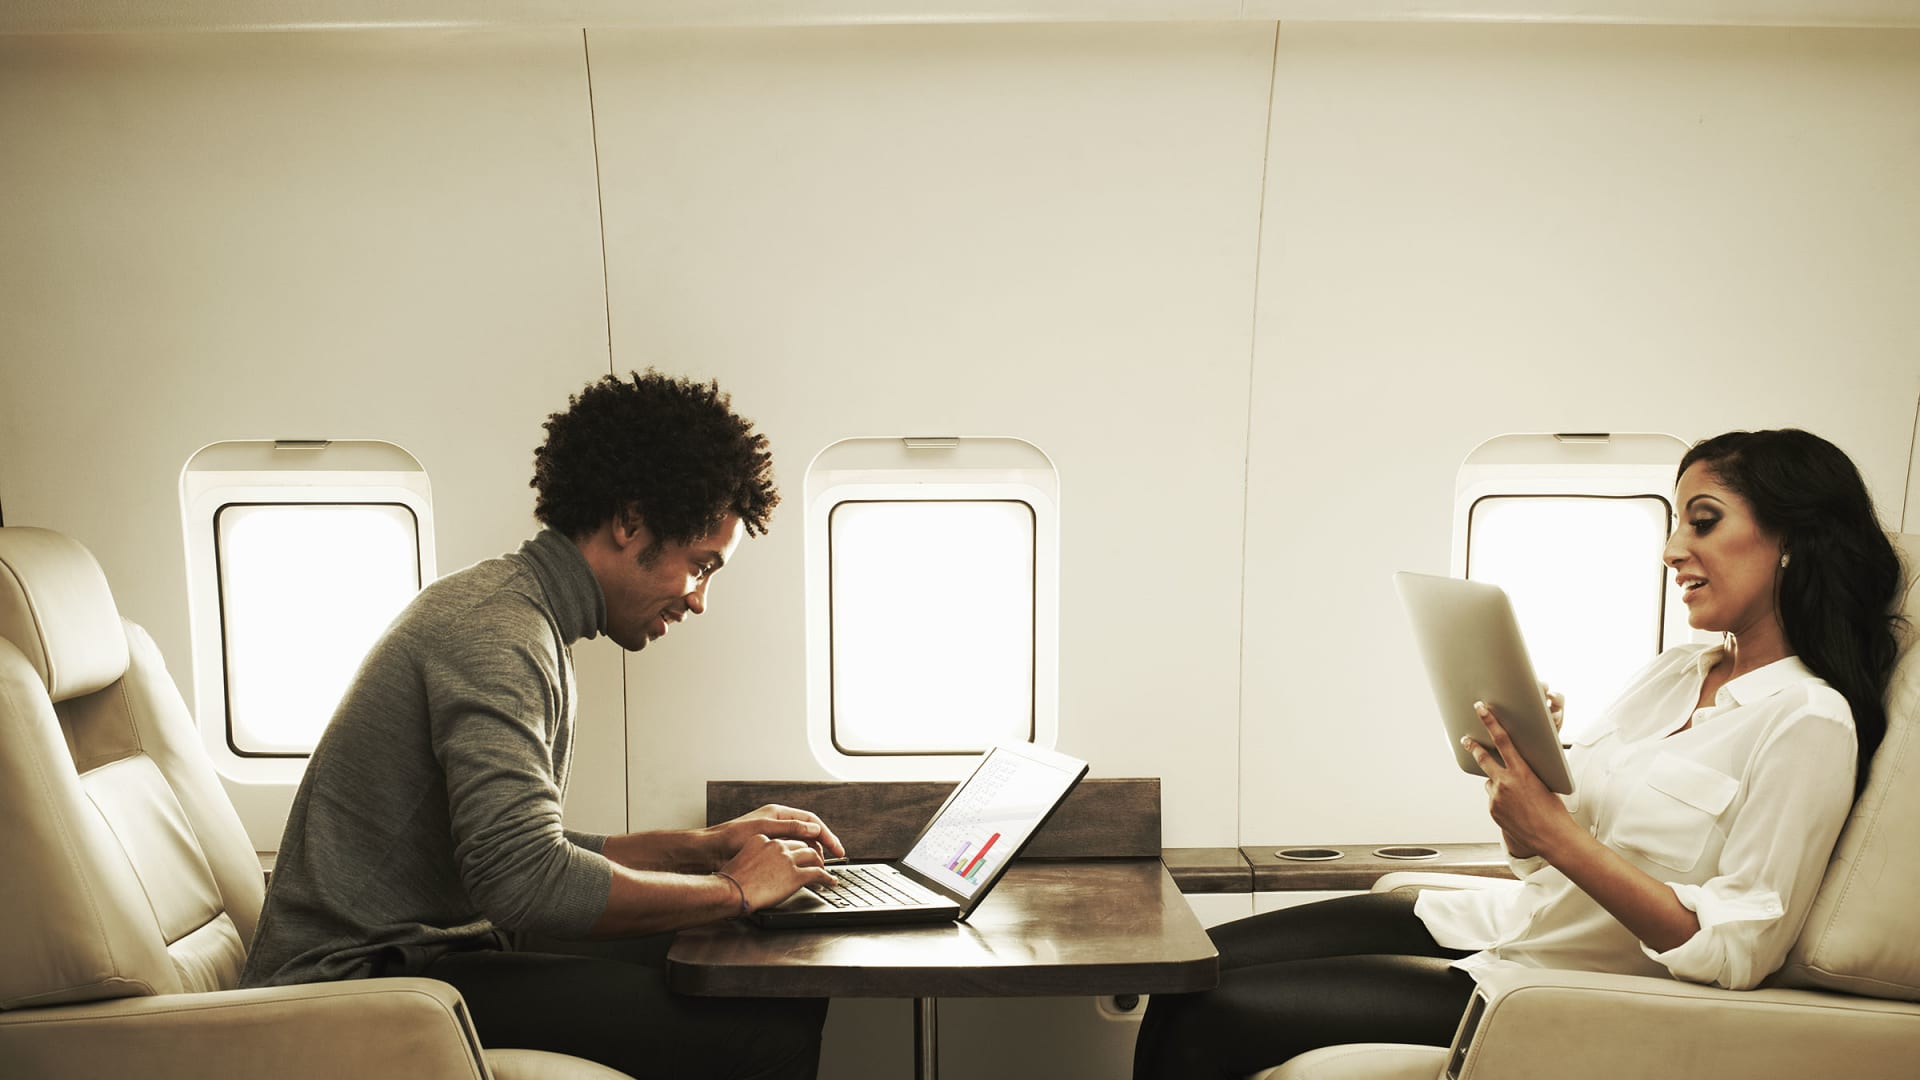 Mobile apps, which are being used by younger customers, make booking private jets easier and faster.